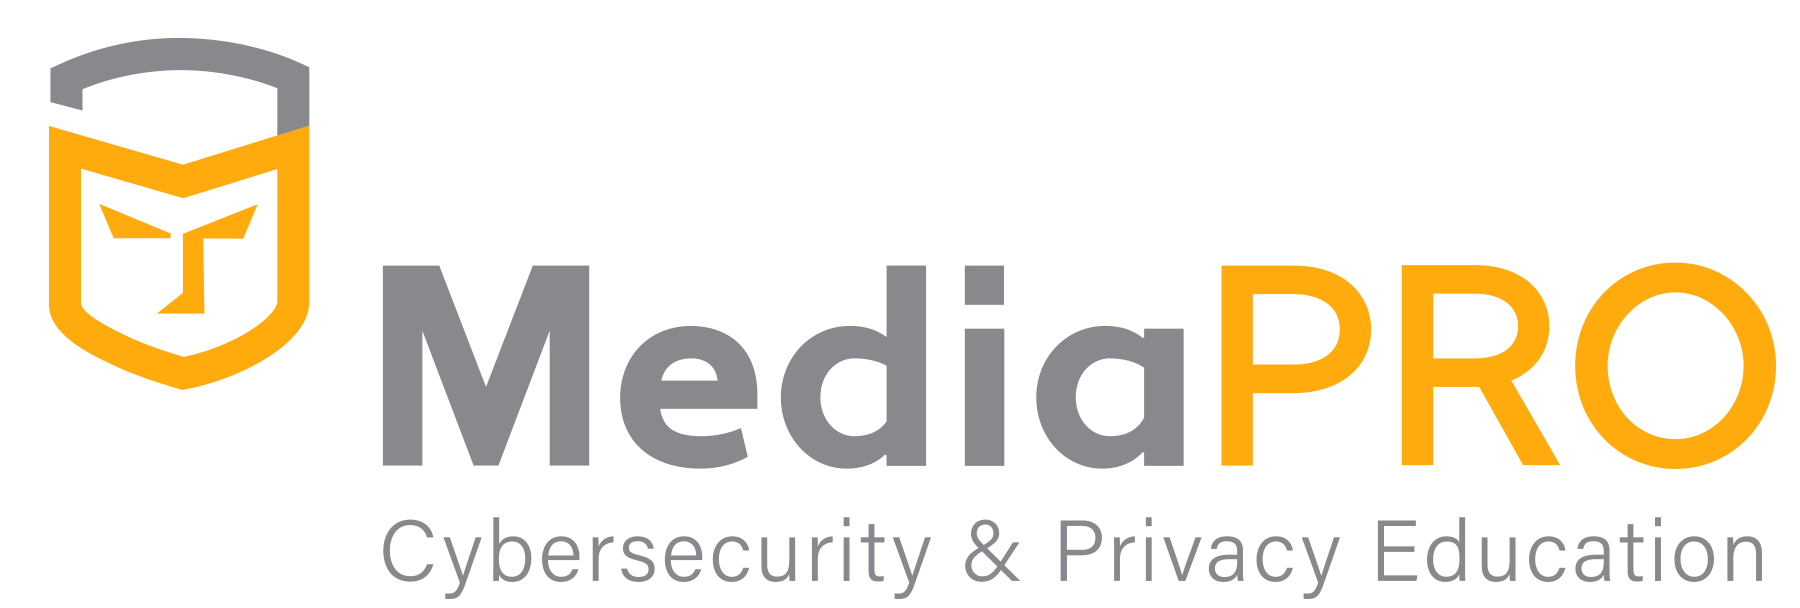 QA/User Acceptance Testing Engineer - MediaPro - Career Page